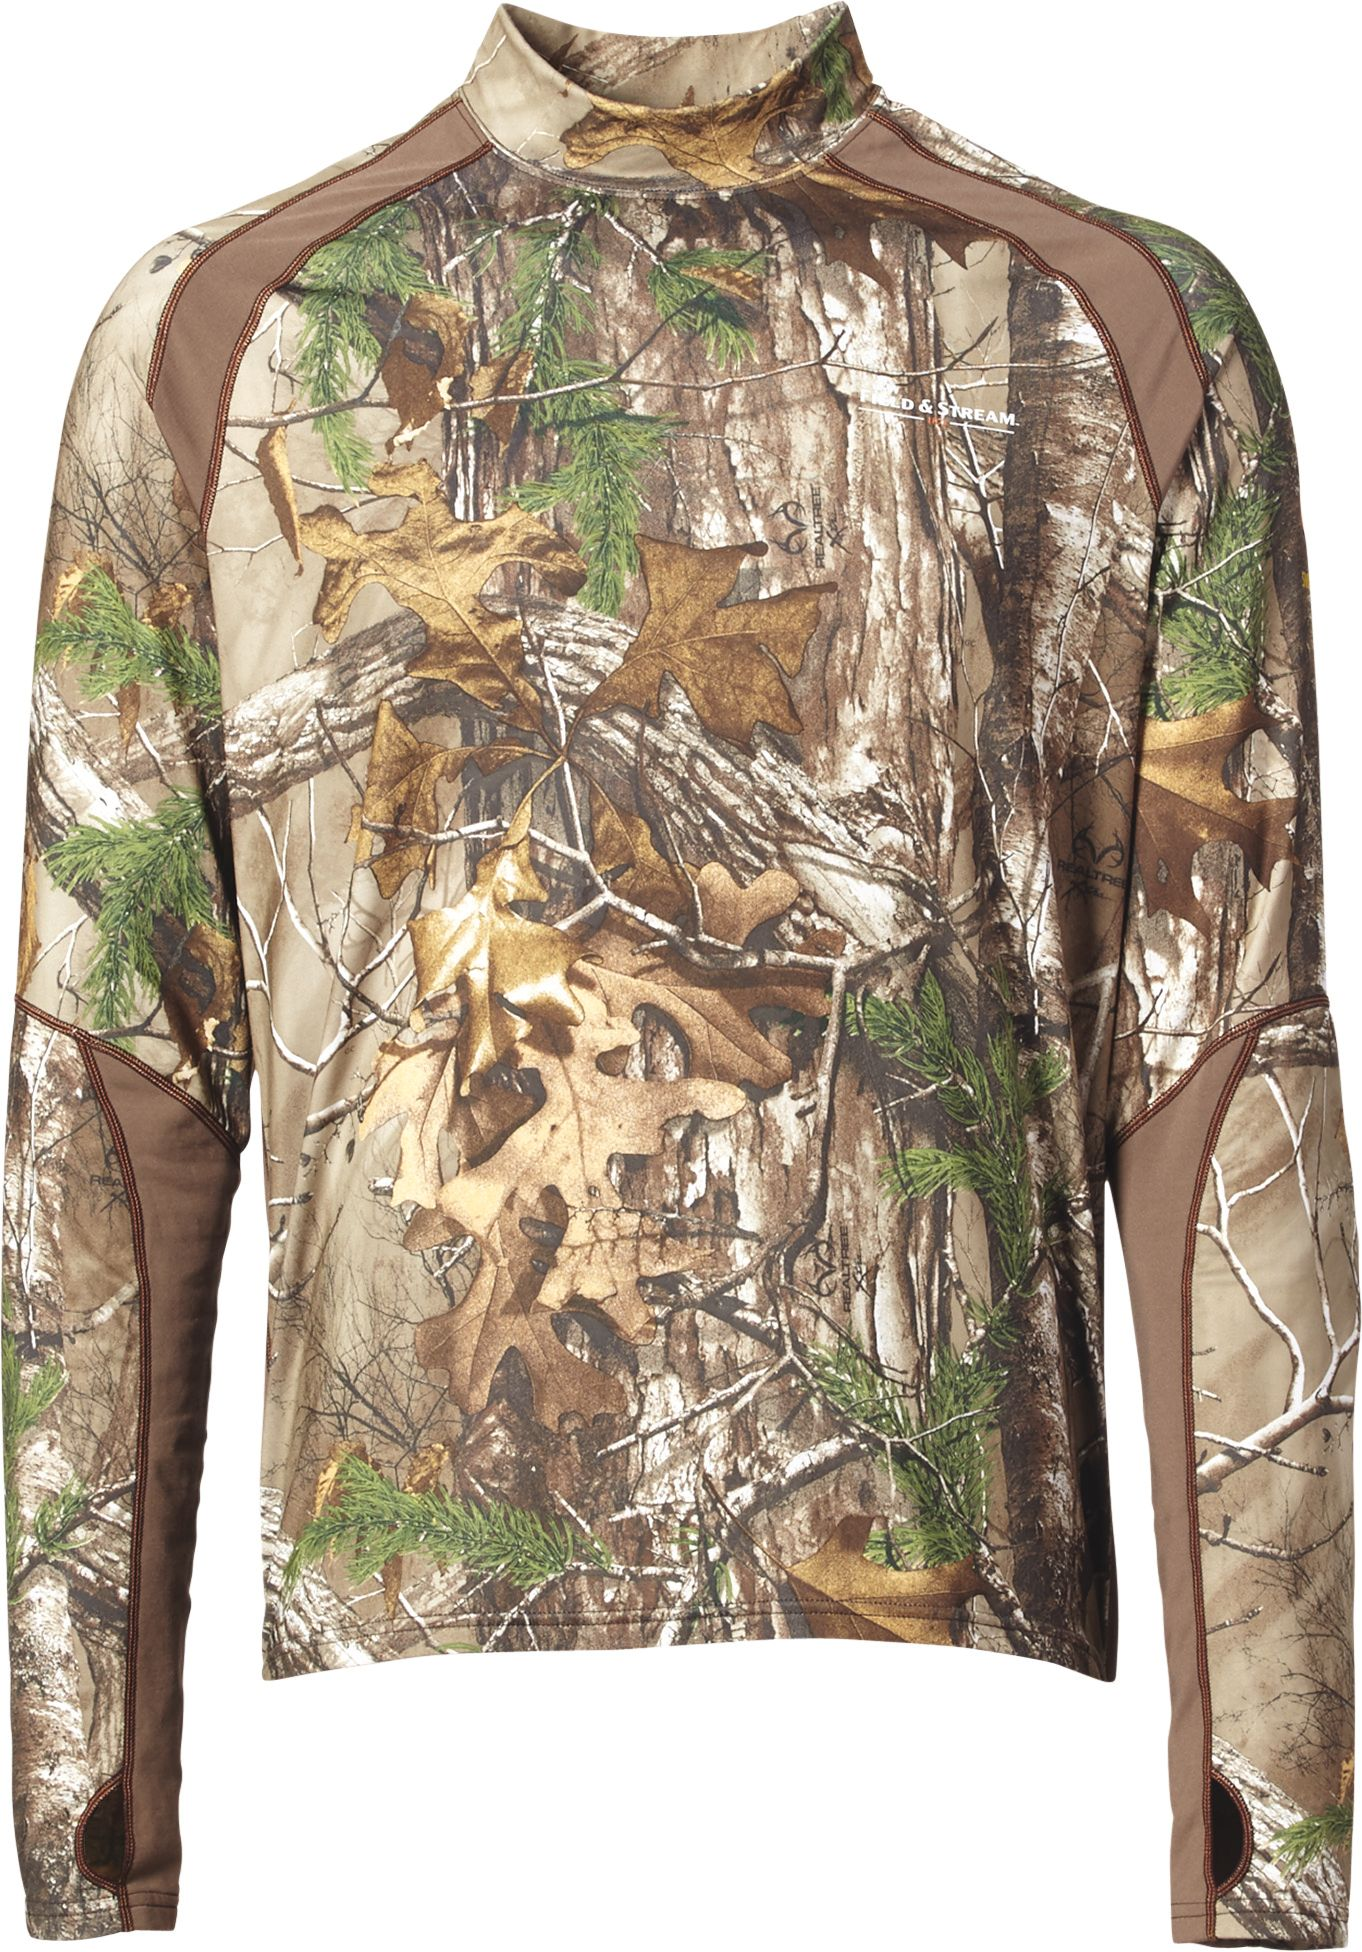 Field & Stream Youth Base Defense Midweight Mock Neck Base Layer Shirt, Kids Unisex, Size: Small, Brown thumbnail